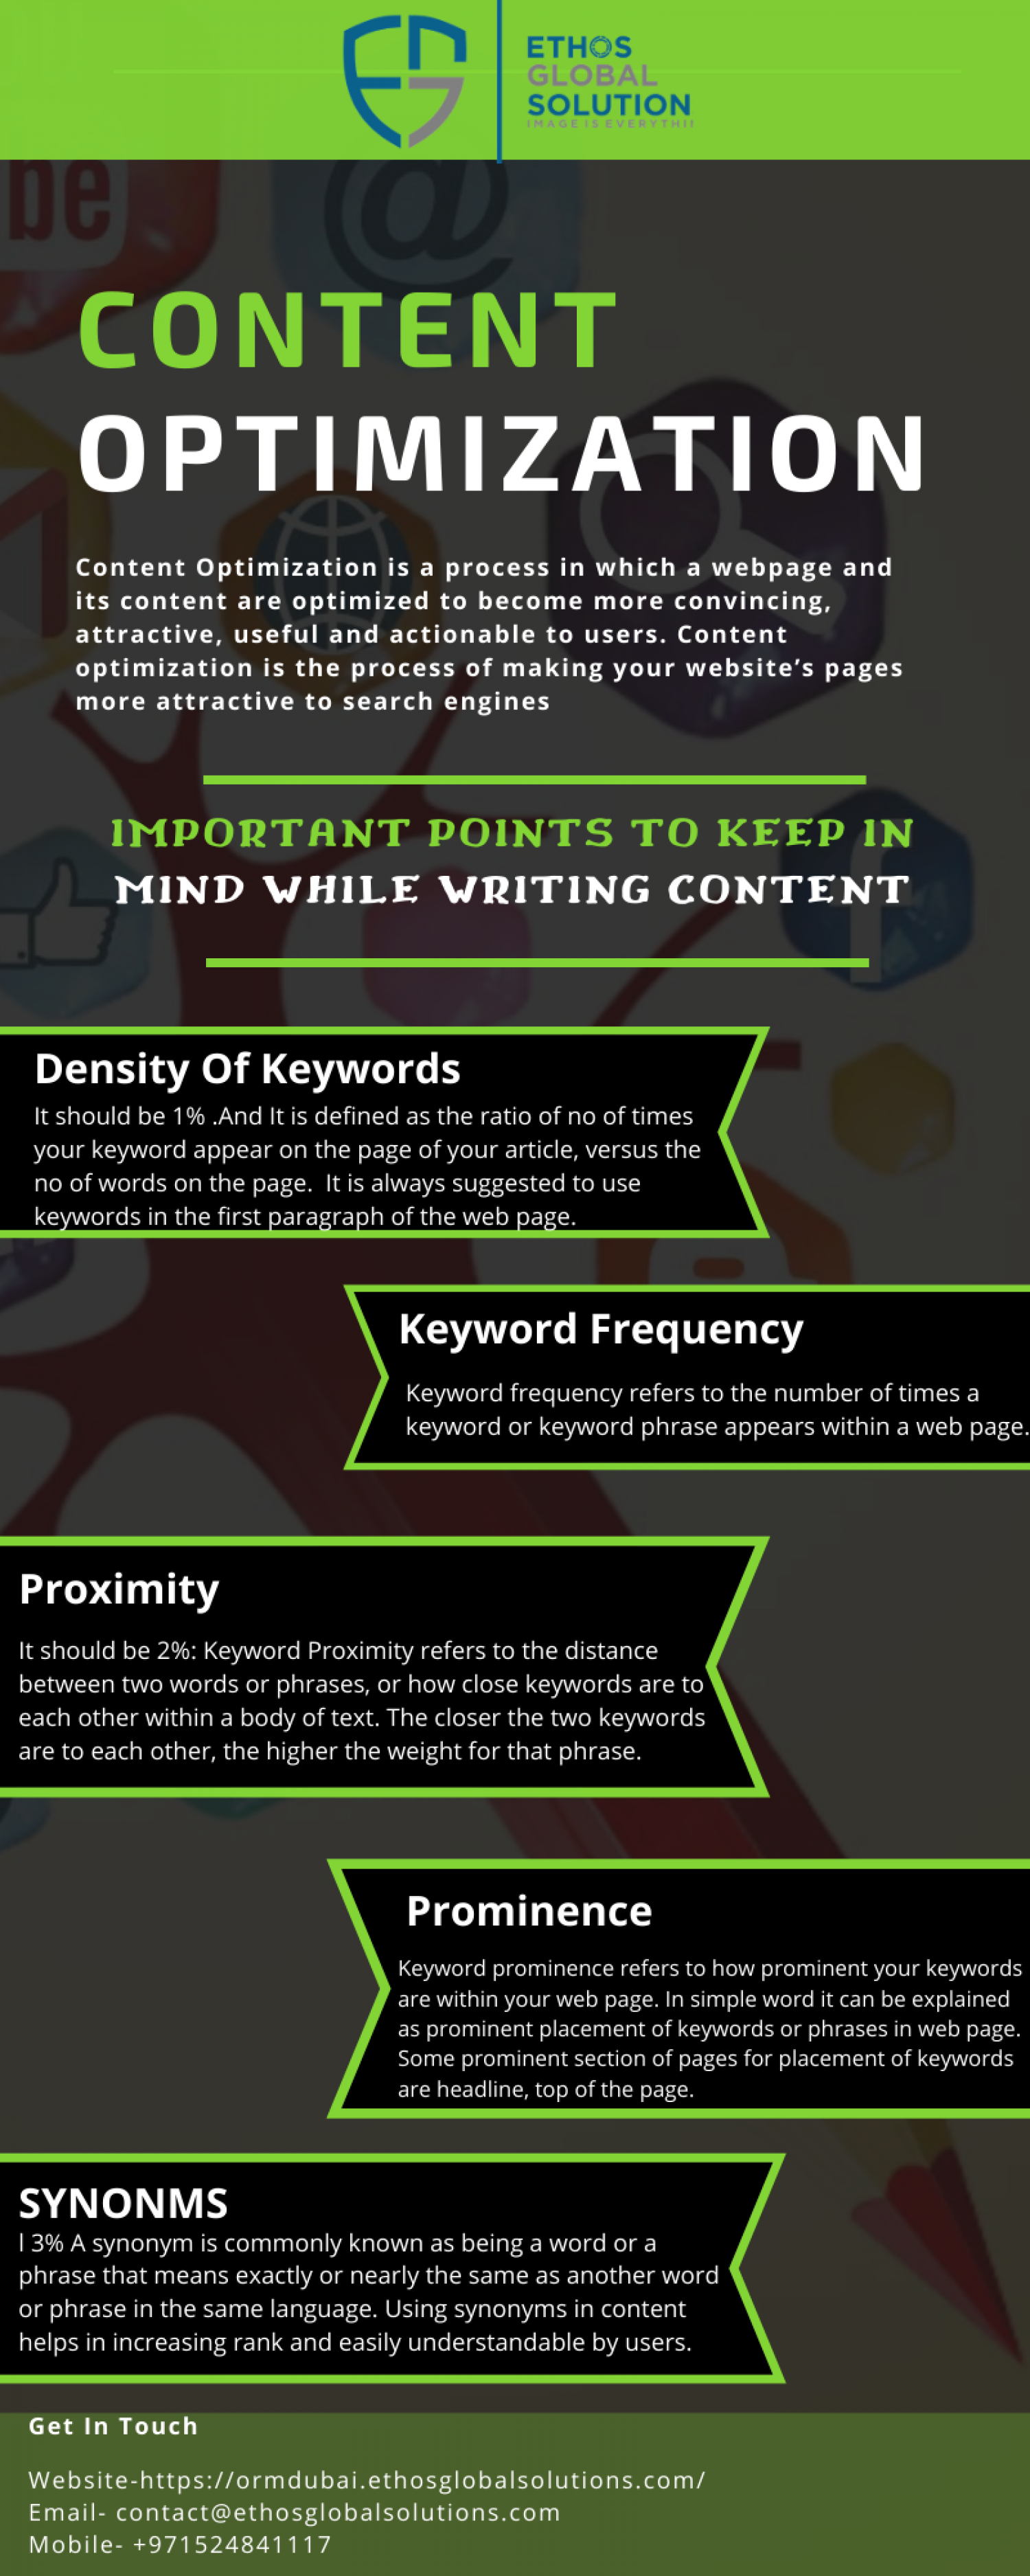 Content Optimization Infographic